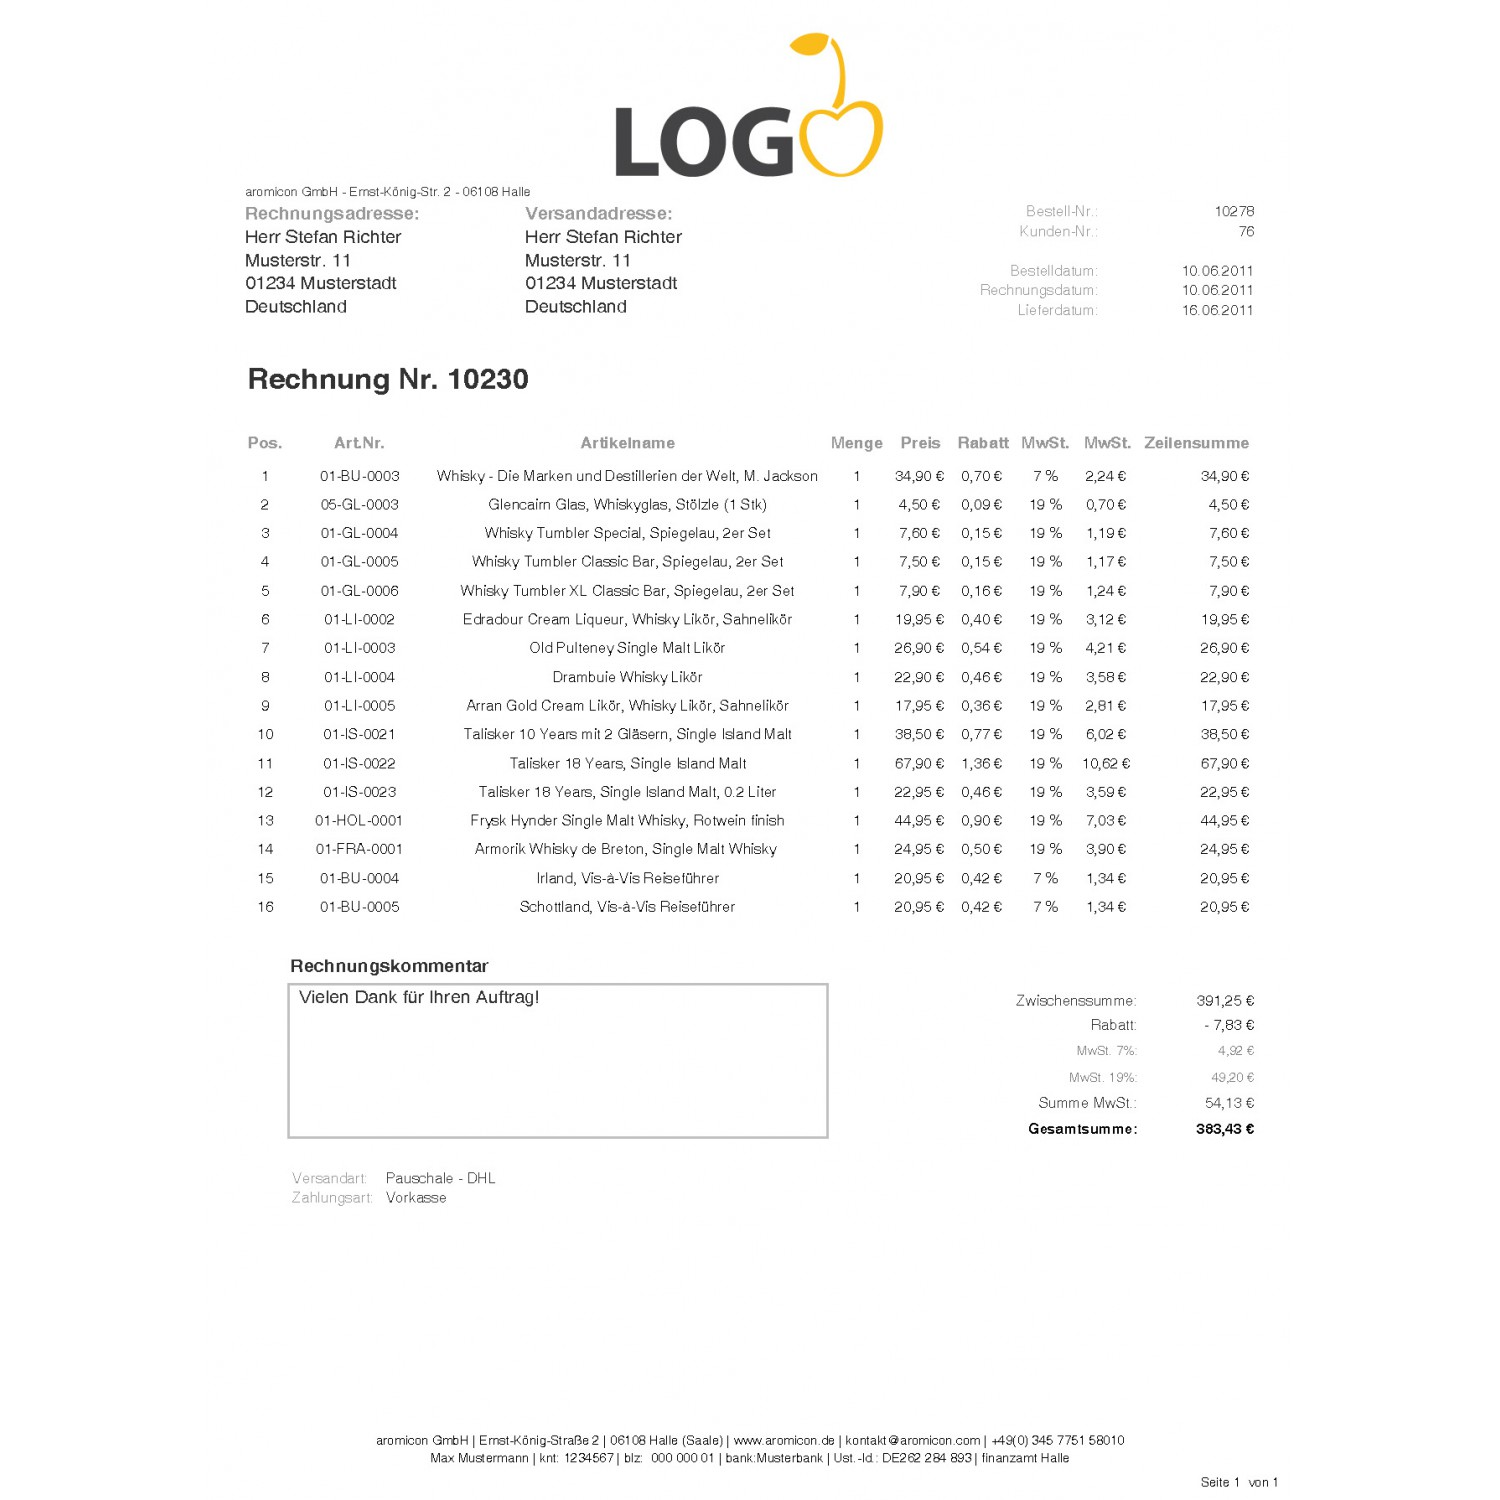 Invoice Template Sample Download Invoice Template Germany  Rabitahnet Internal Controls For Cash Receipts Excel with Invoice For Small Business Word Invoice Pdf Pro  Standard Invoice Template German  Aromicon Invoice  Examples This Is To Acknowledge Receipt Of Excel